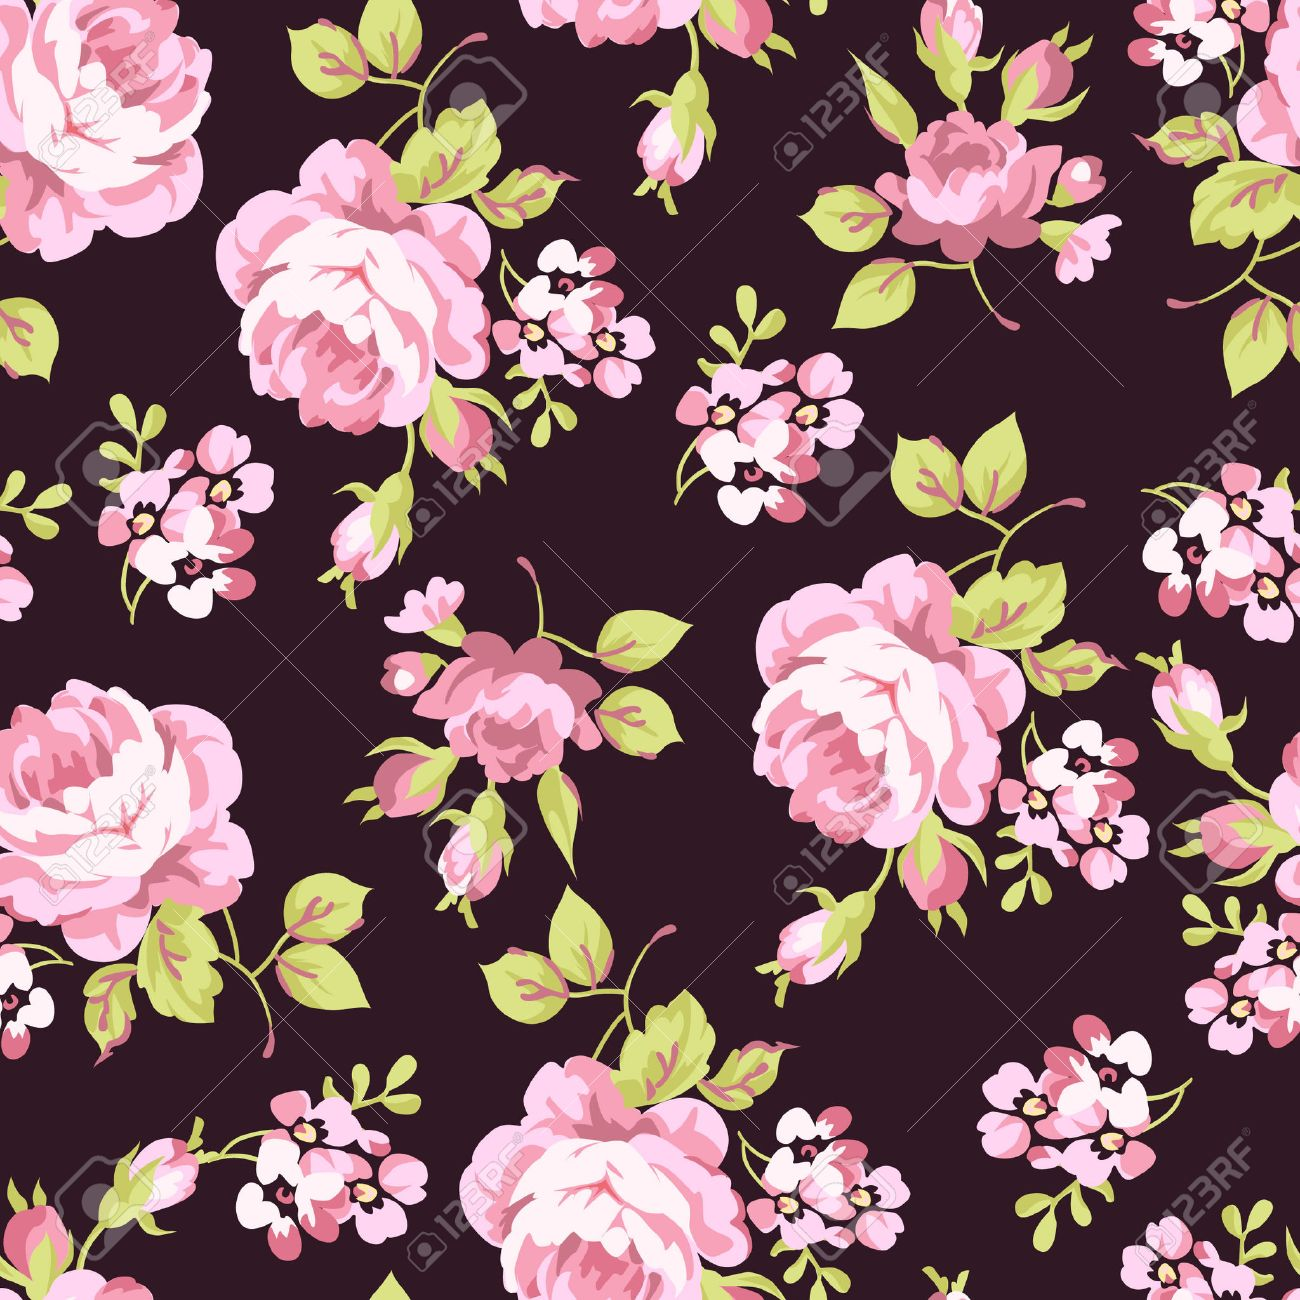 Free Floral Pattern Kampa Luckincsolutions Org